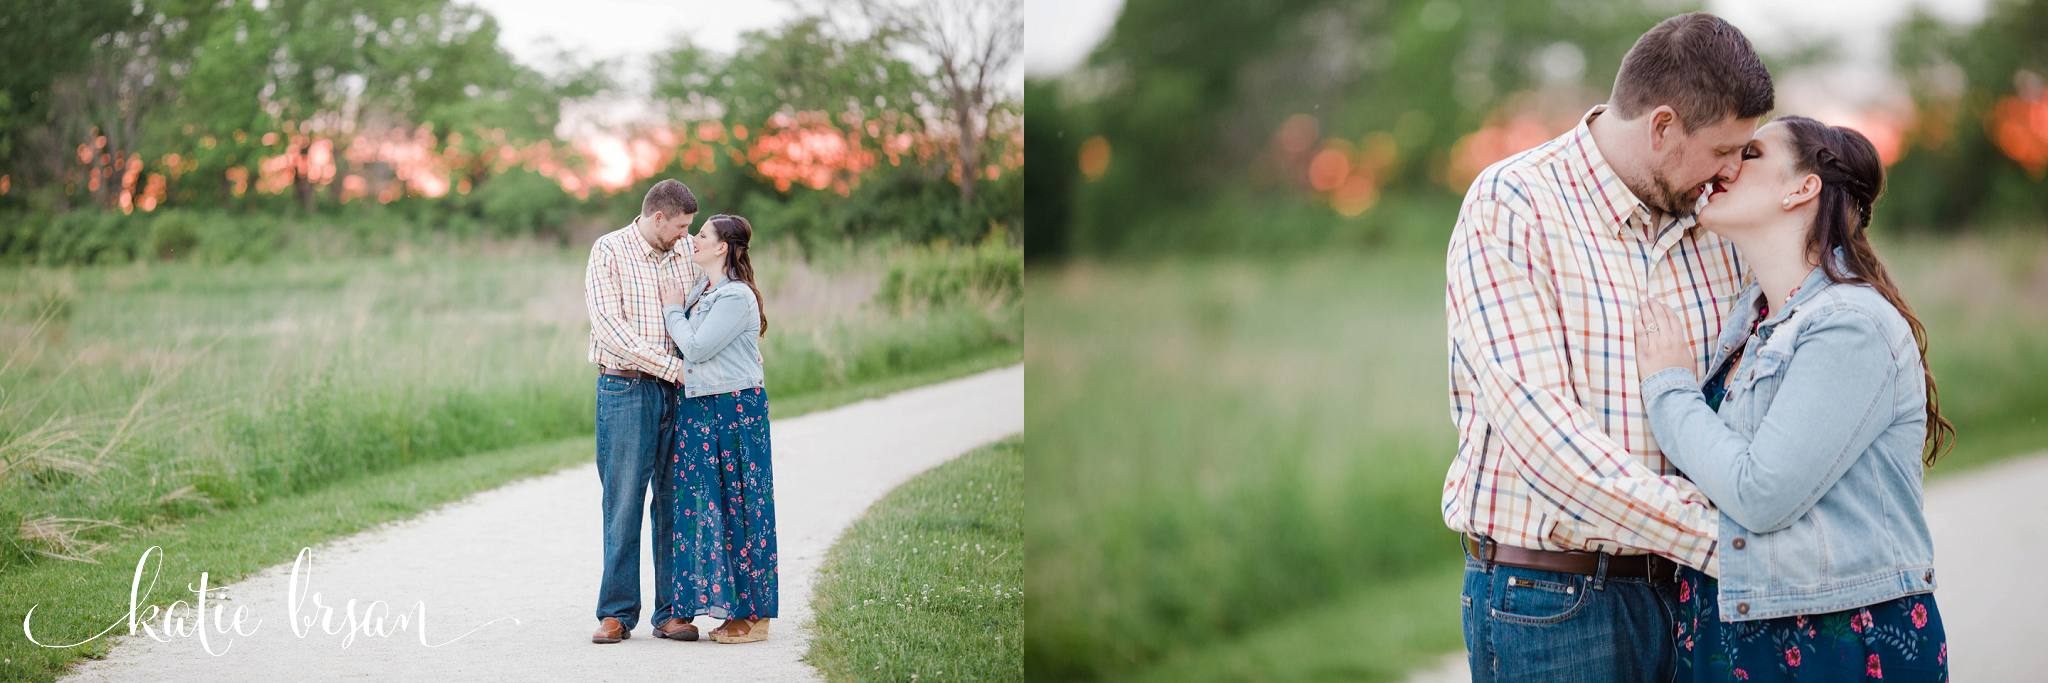 KatieBrsan-HomerGlen-NewLenox-EngagementSession-HadleyValley-TeacherEngagementSession-ChicagoWeddingPhotographer_0588.jpg